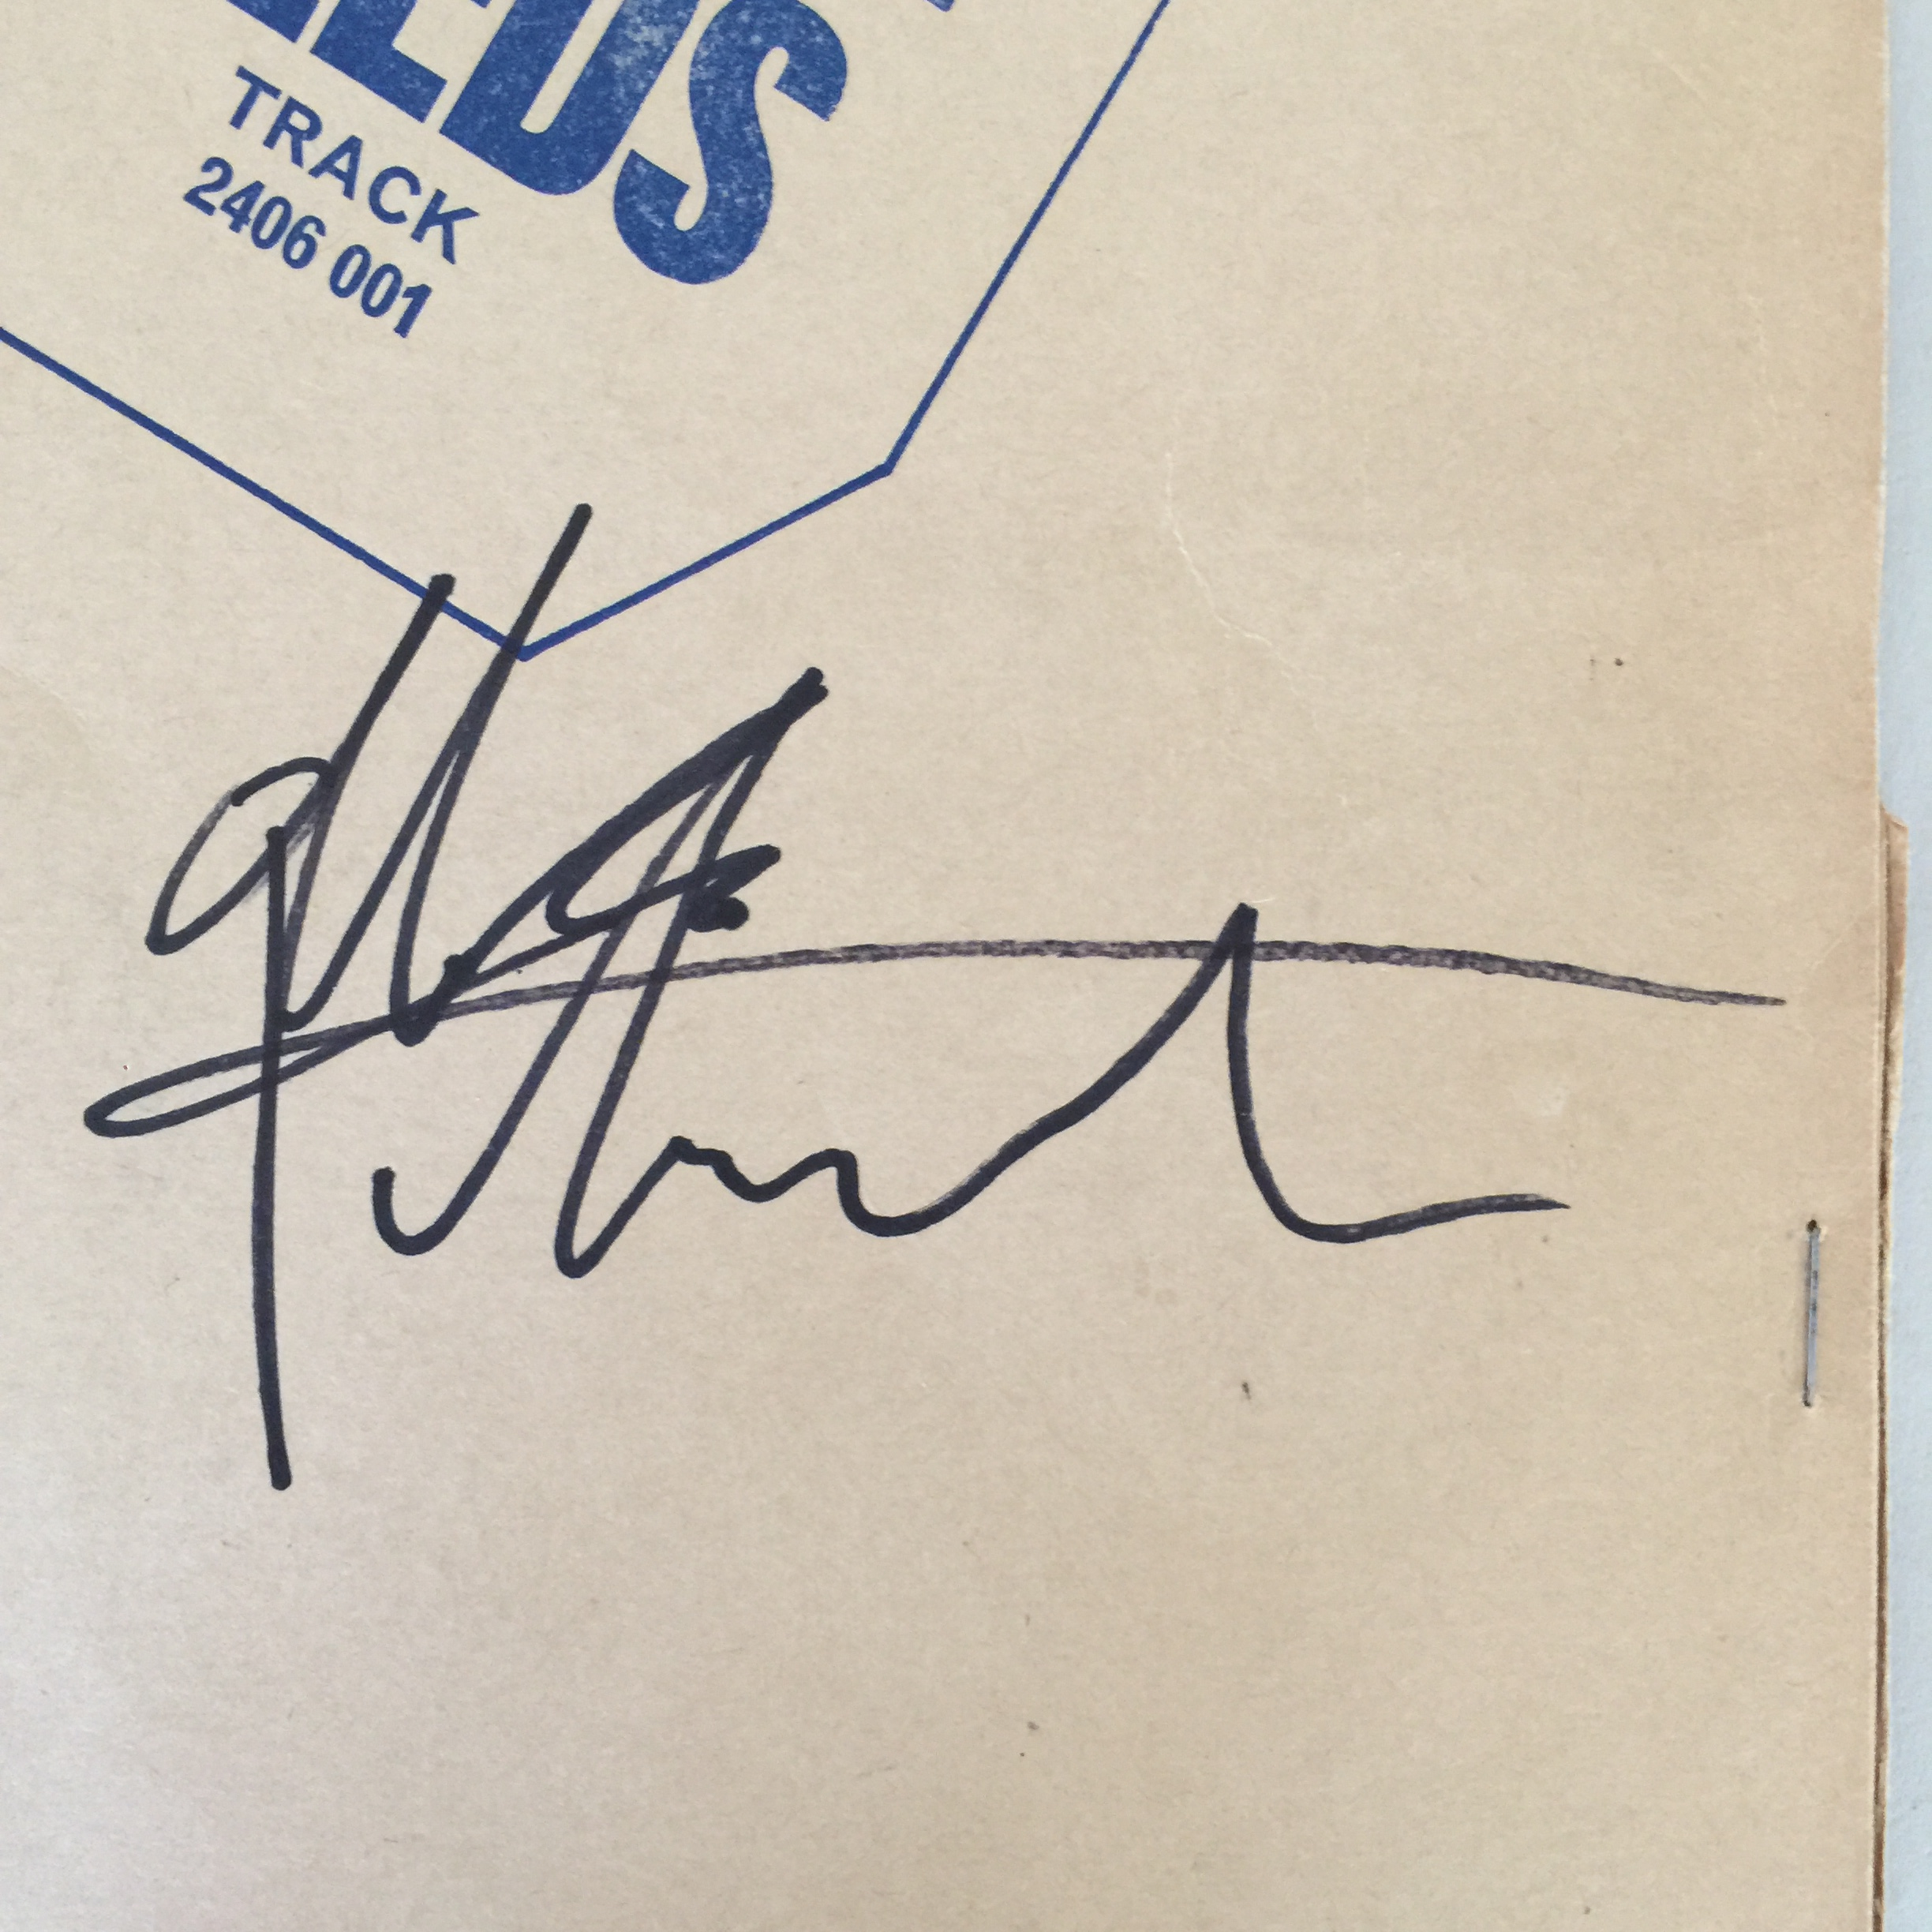 THE WHO SIGNED JOHN ENTWISTLE/PETE TOWNSHEND. A copy of The Who's - Live at Leeds (TRACK 2406 001